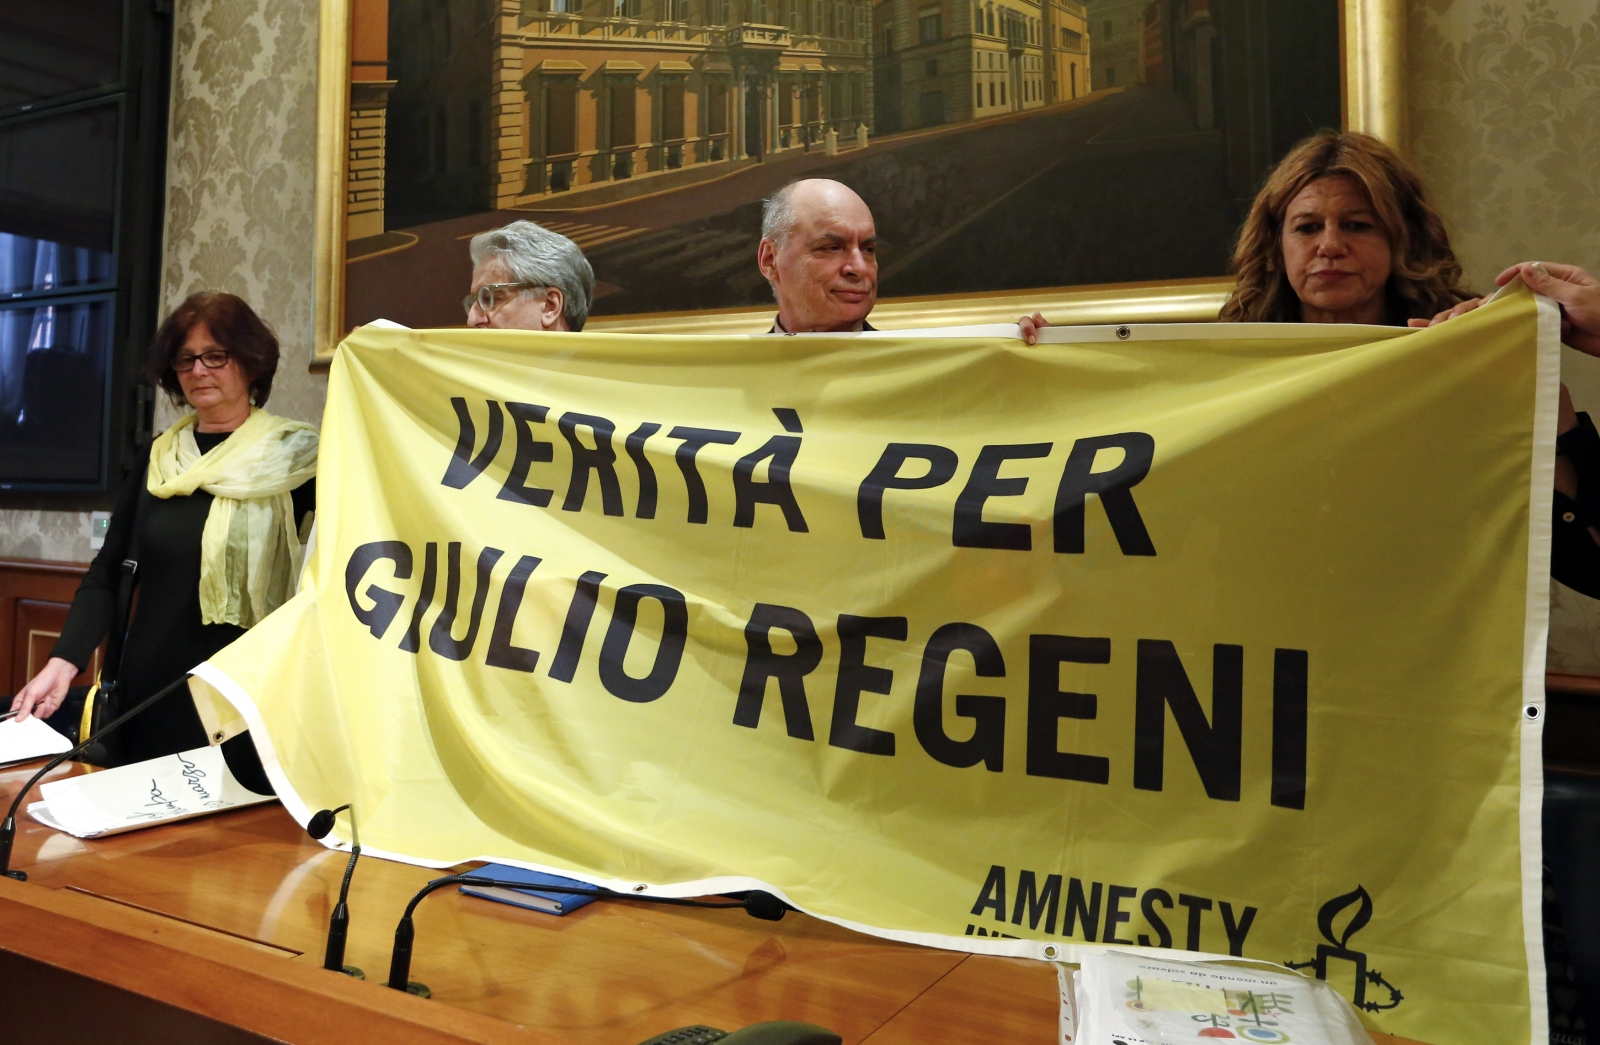 Murdered Giulio Regeni's family begs Pope Francis to seek truth during papal visit to Egypt